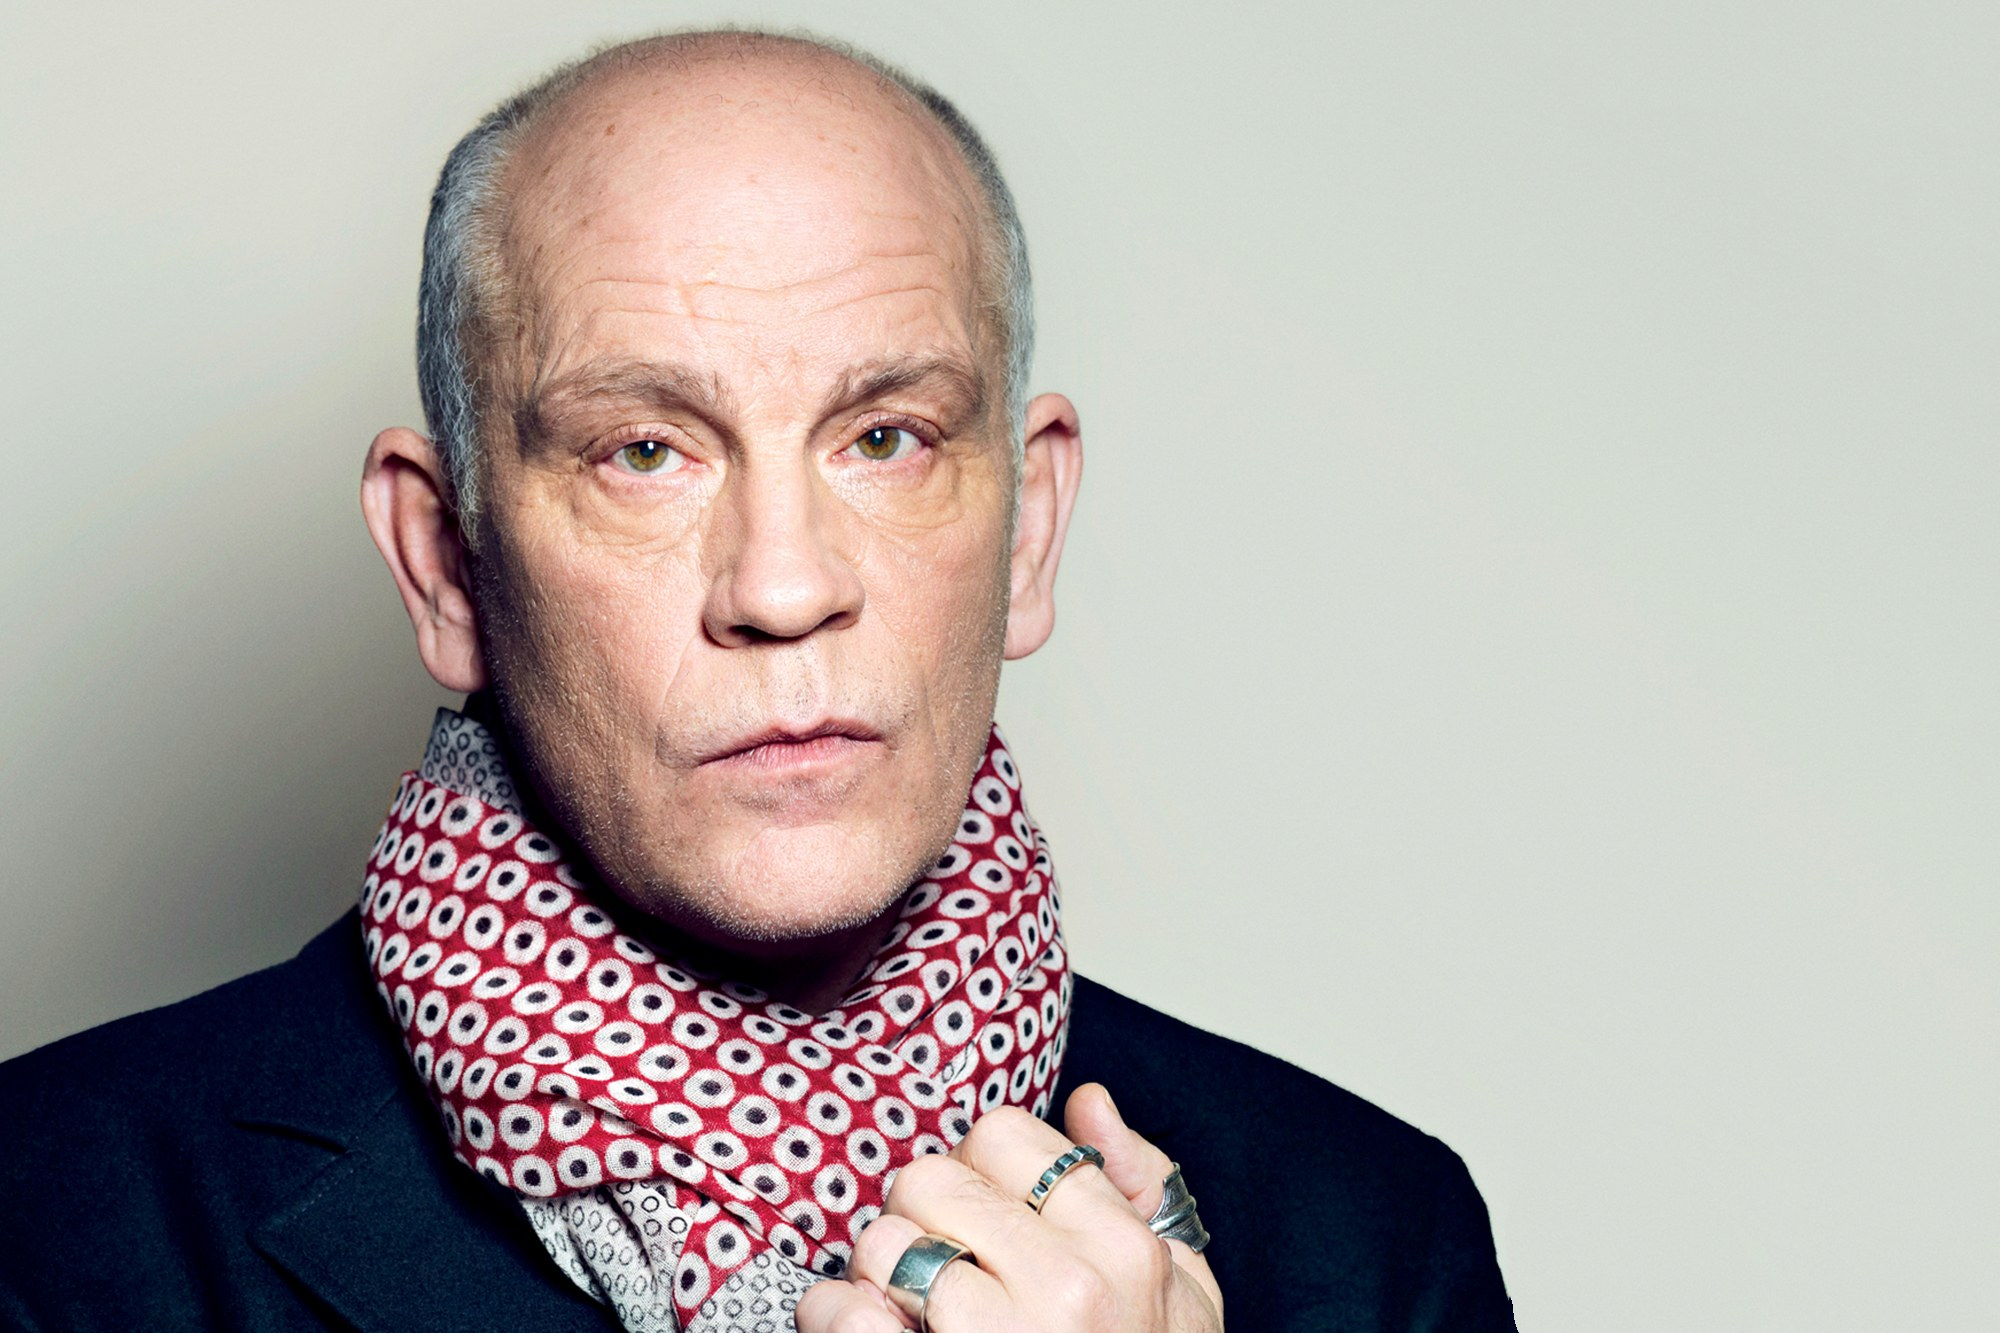 This man (above, not John Malkovich) TORPEDO'D my second semester junior year GPA and now I write lifestyle list-icles for a living...